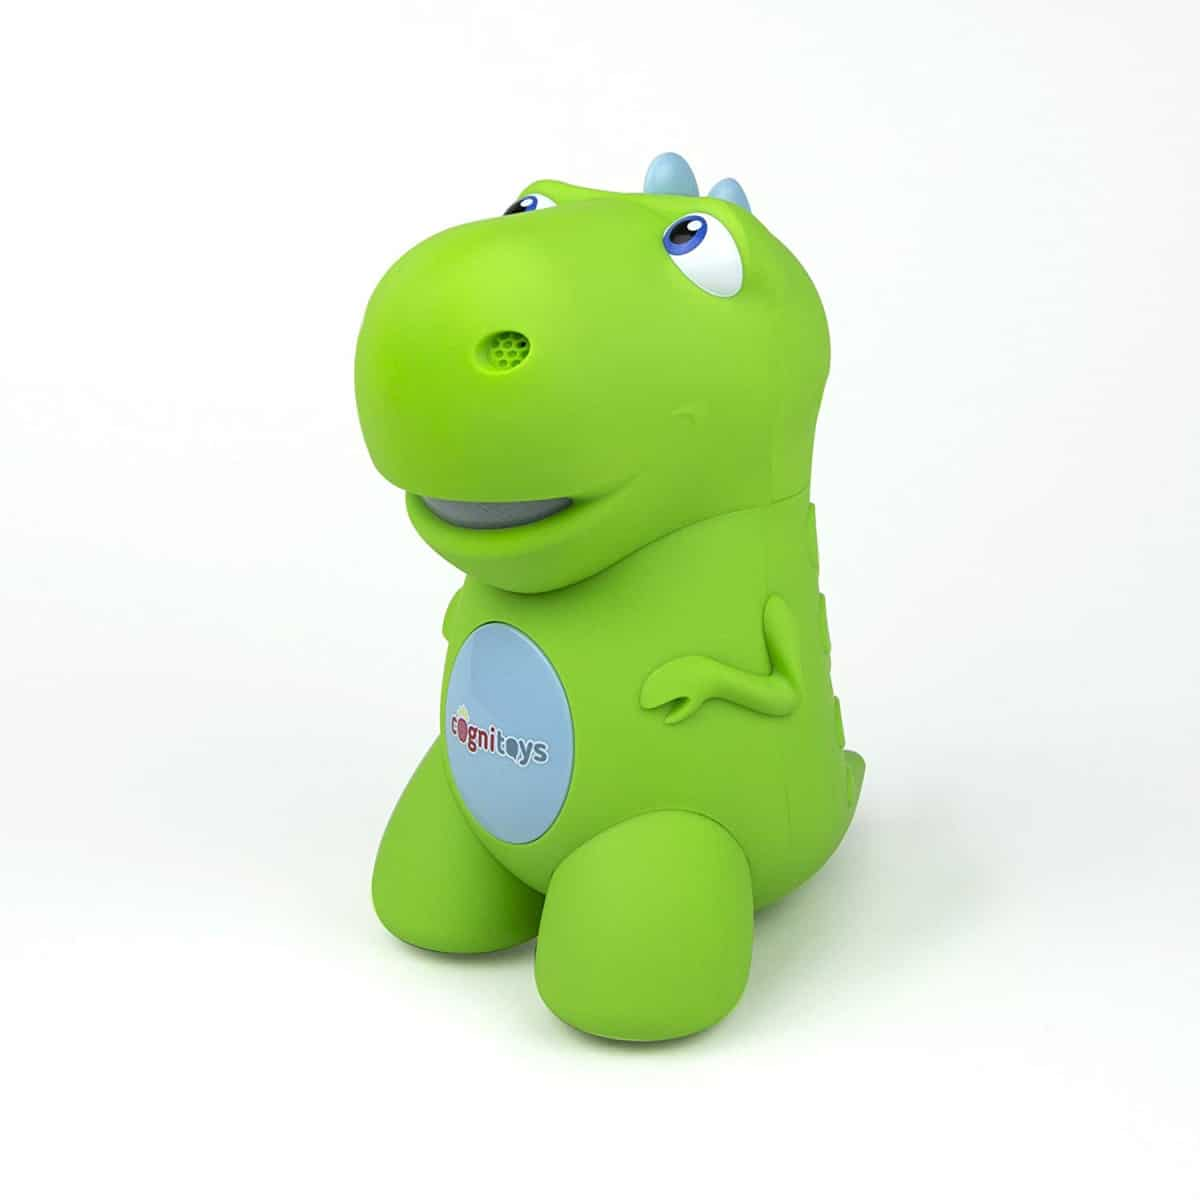 CogniToys Dino | Tech Toys The Kids Will Surely Love